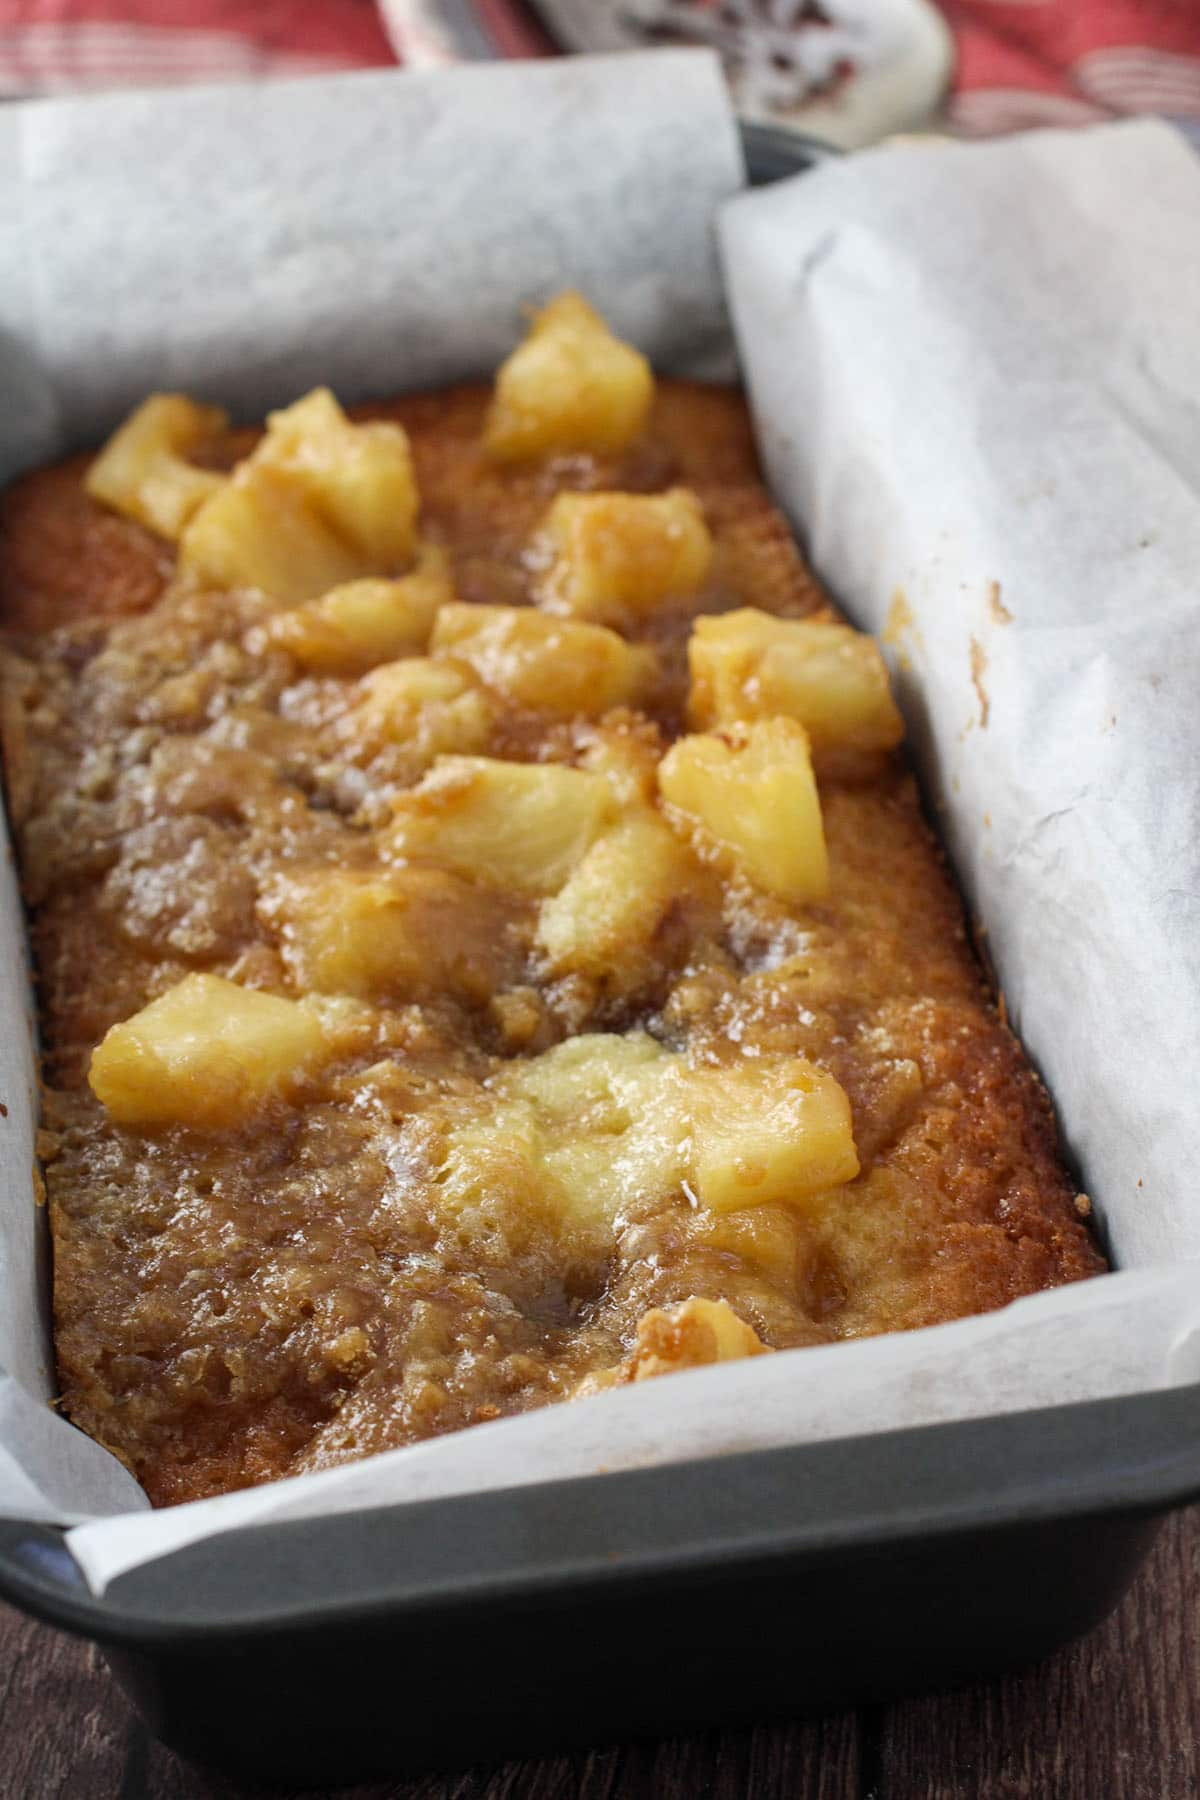 Freshly baked Pineapple loaf cake in a pan.